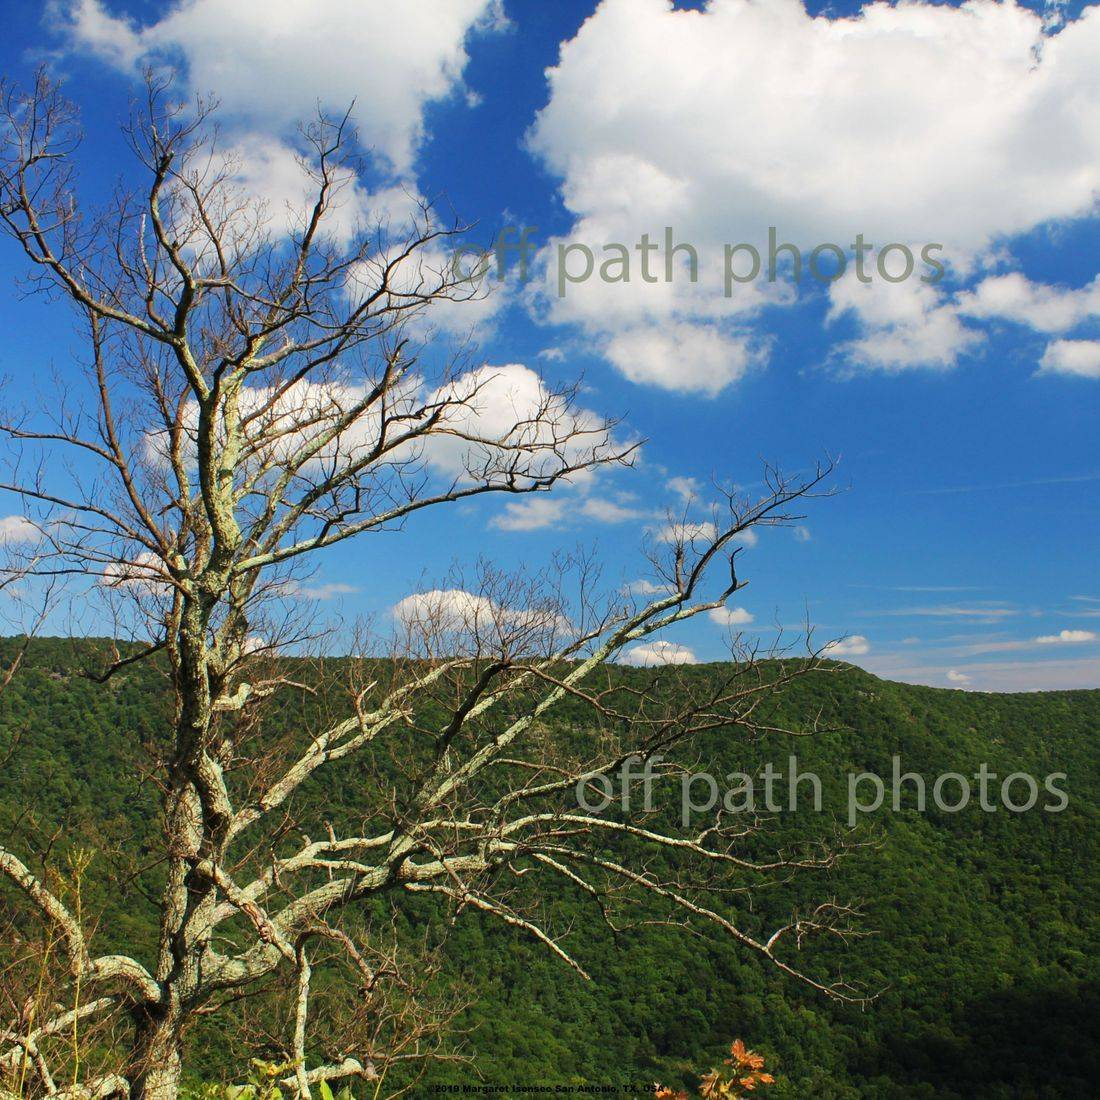 photography, nature, mountains, plants, park, Virginia,  summer, hiking,  sunny, clouds